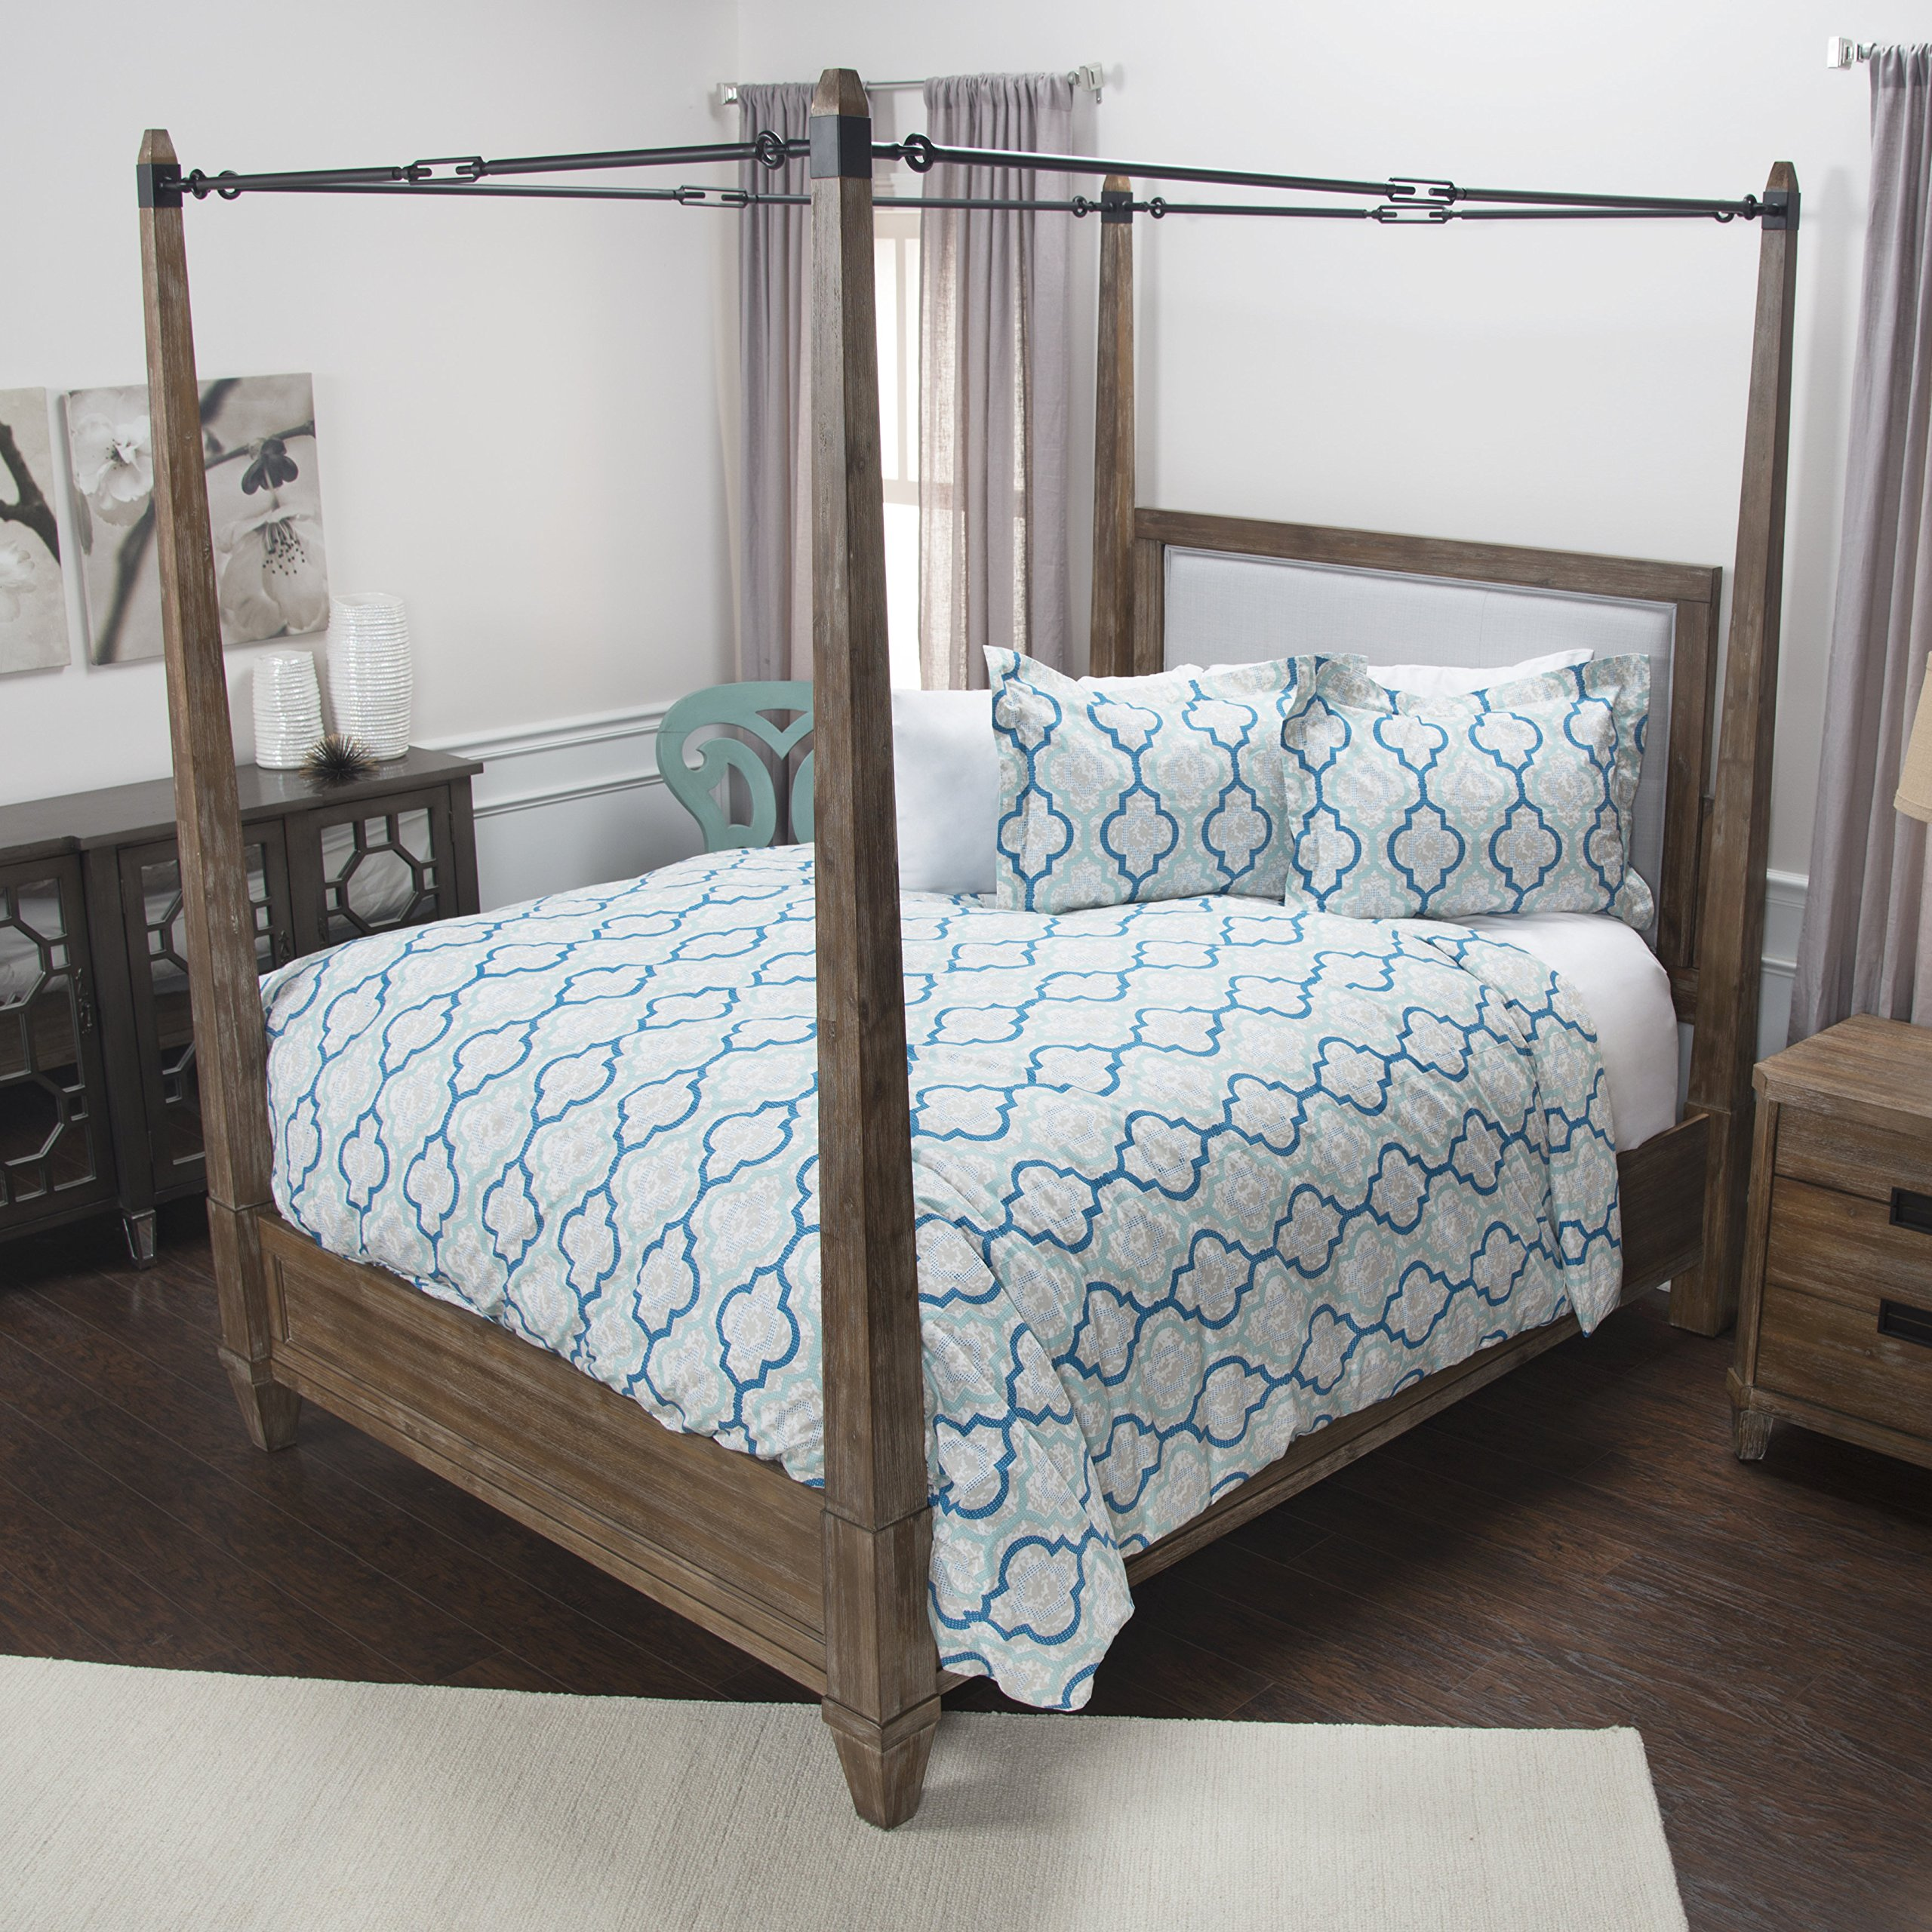 Rizzy Home Young Love Doh Duvet, King, Teal and Peacock Blue